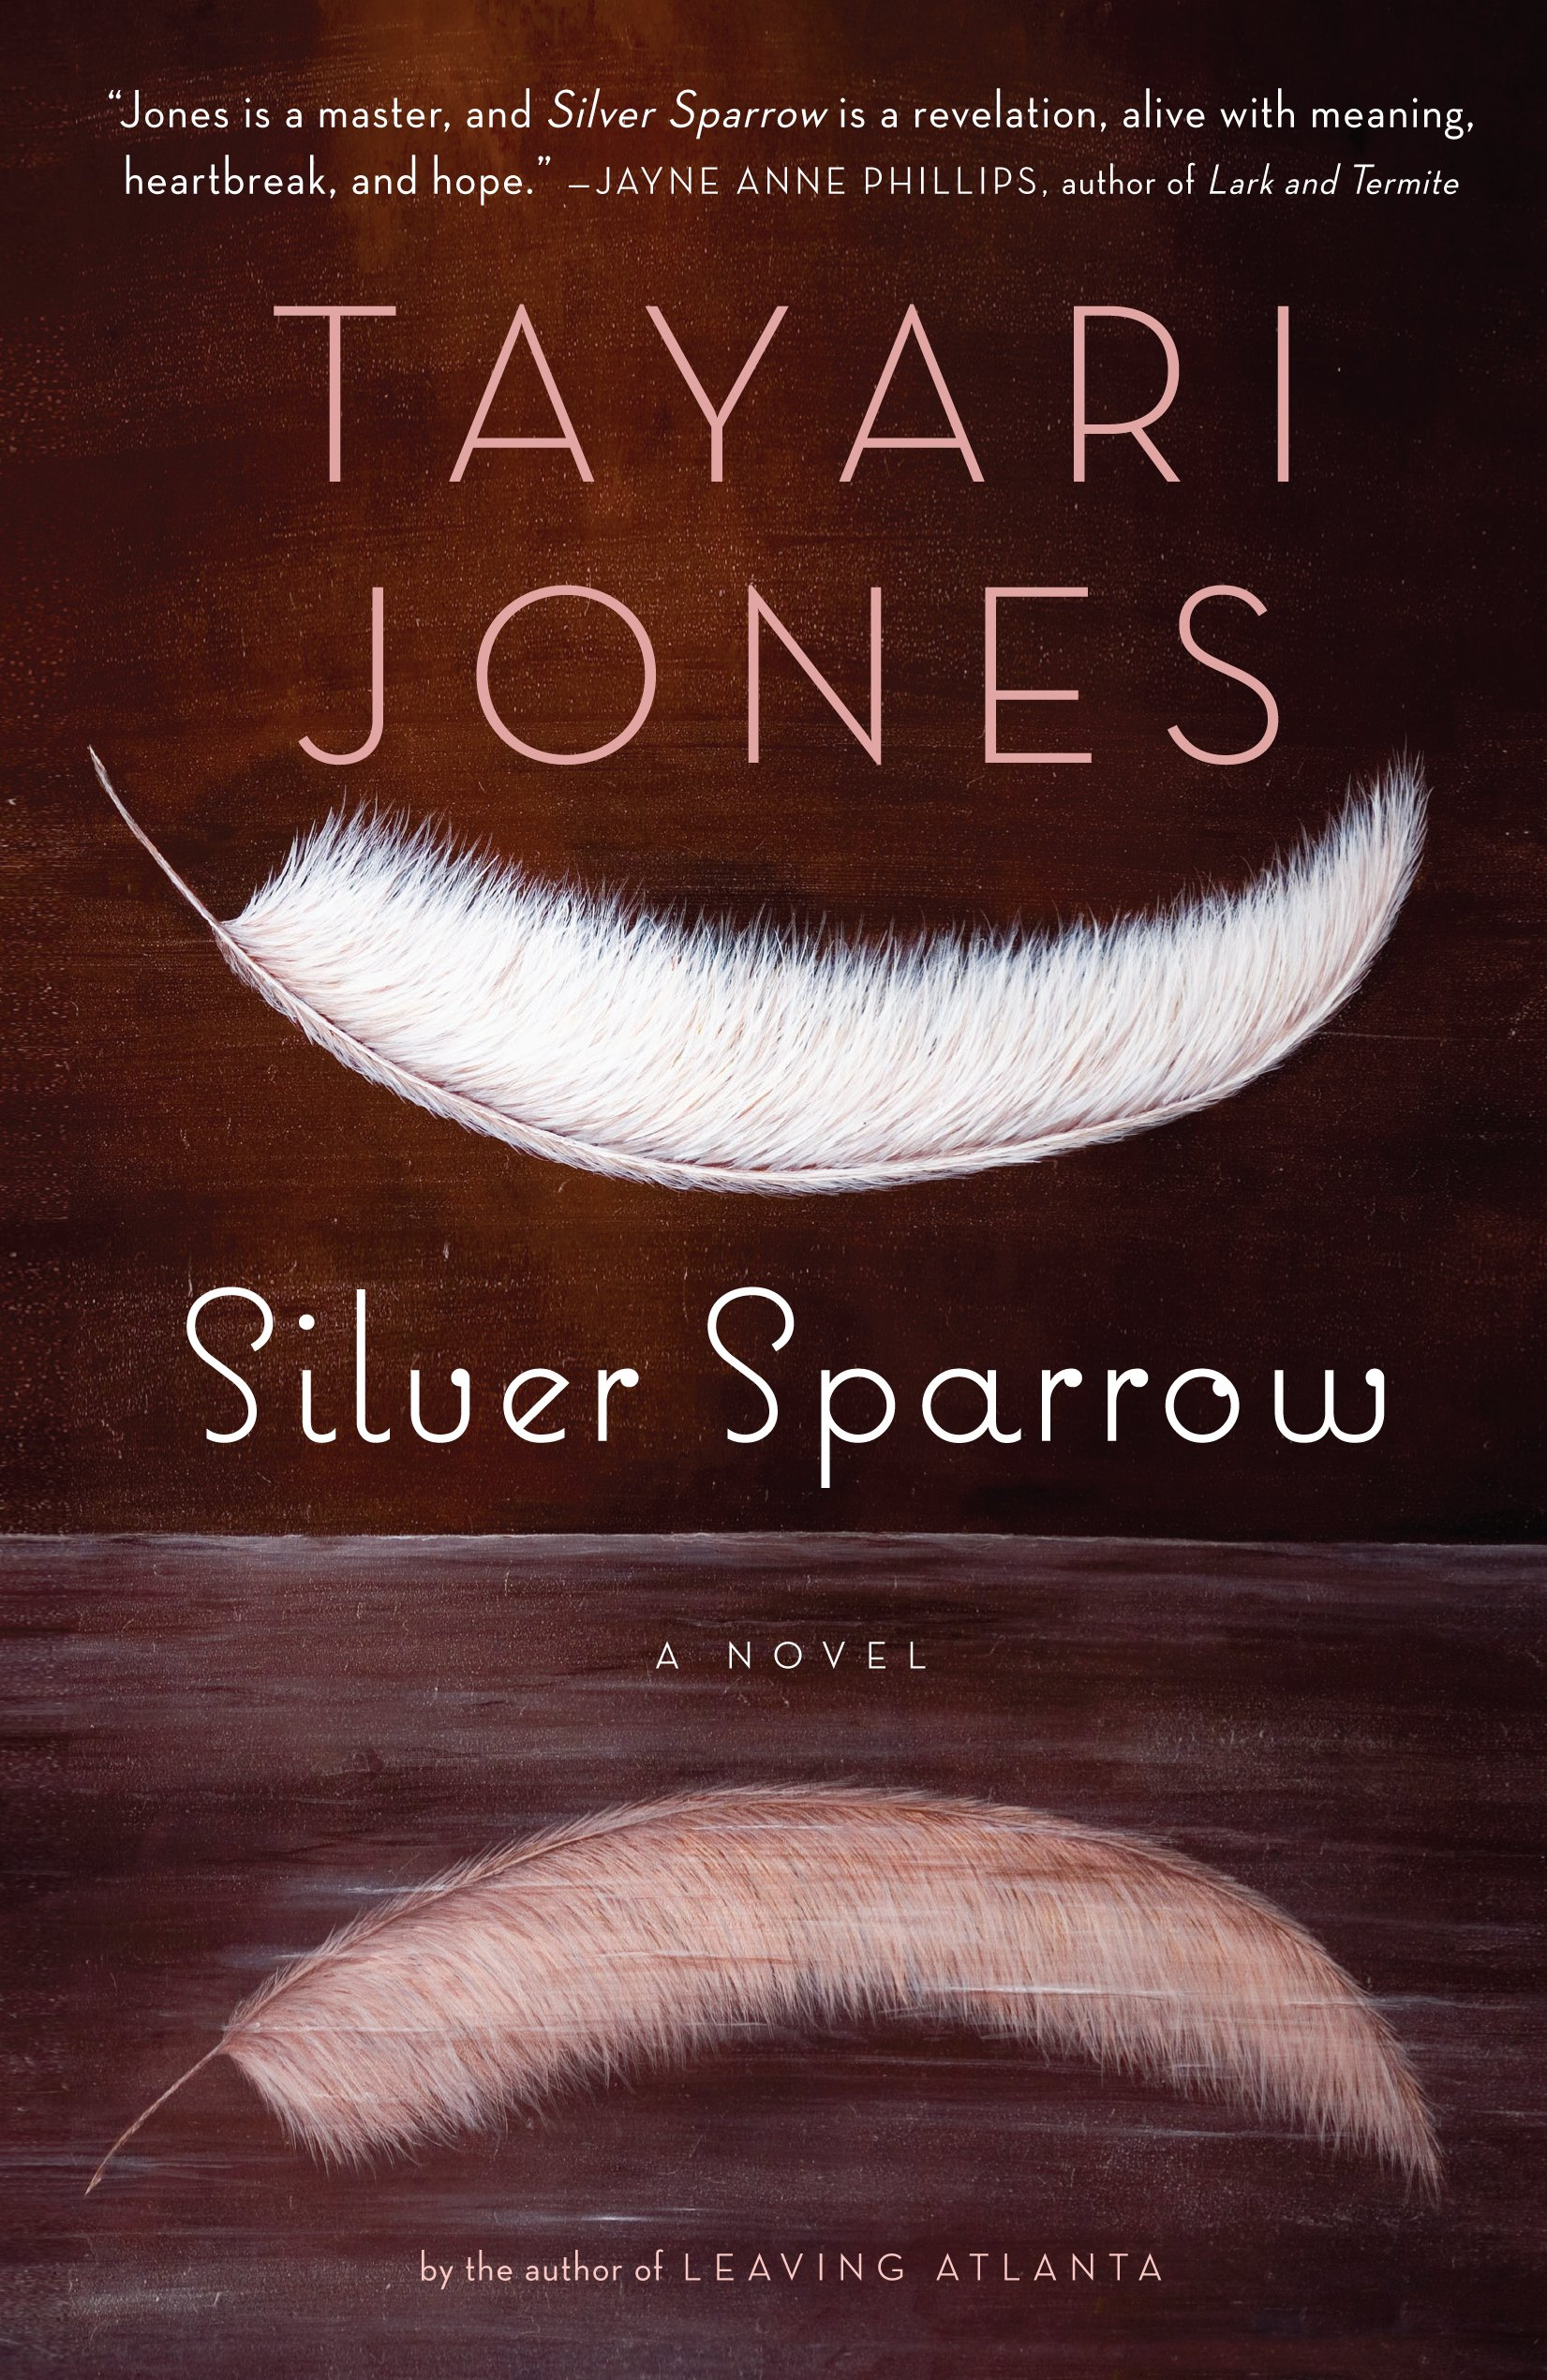 Image result for silver sparrow book